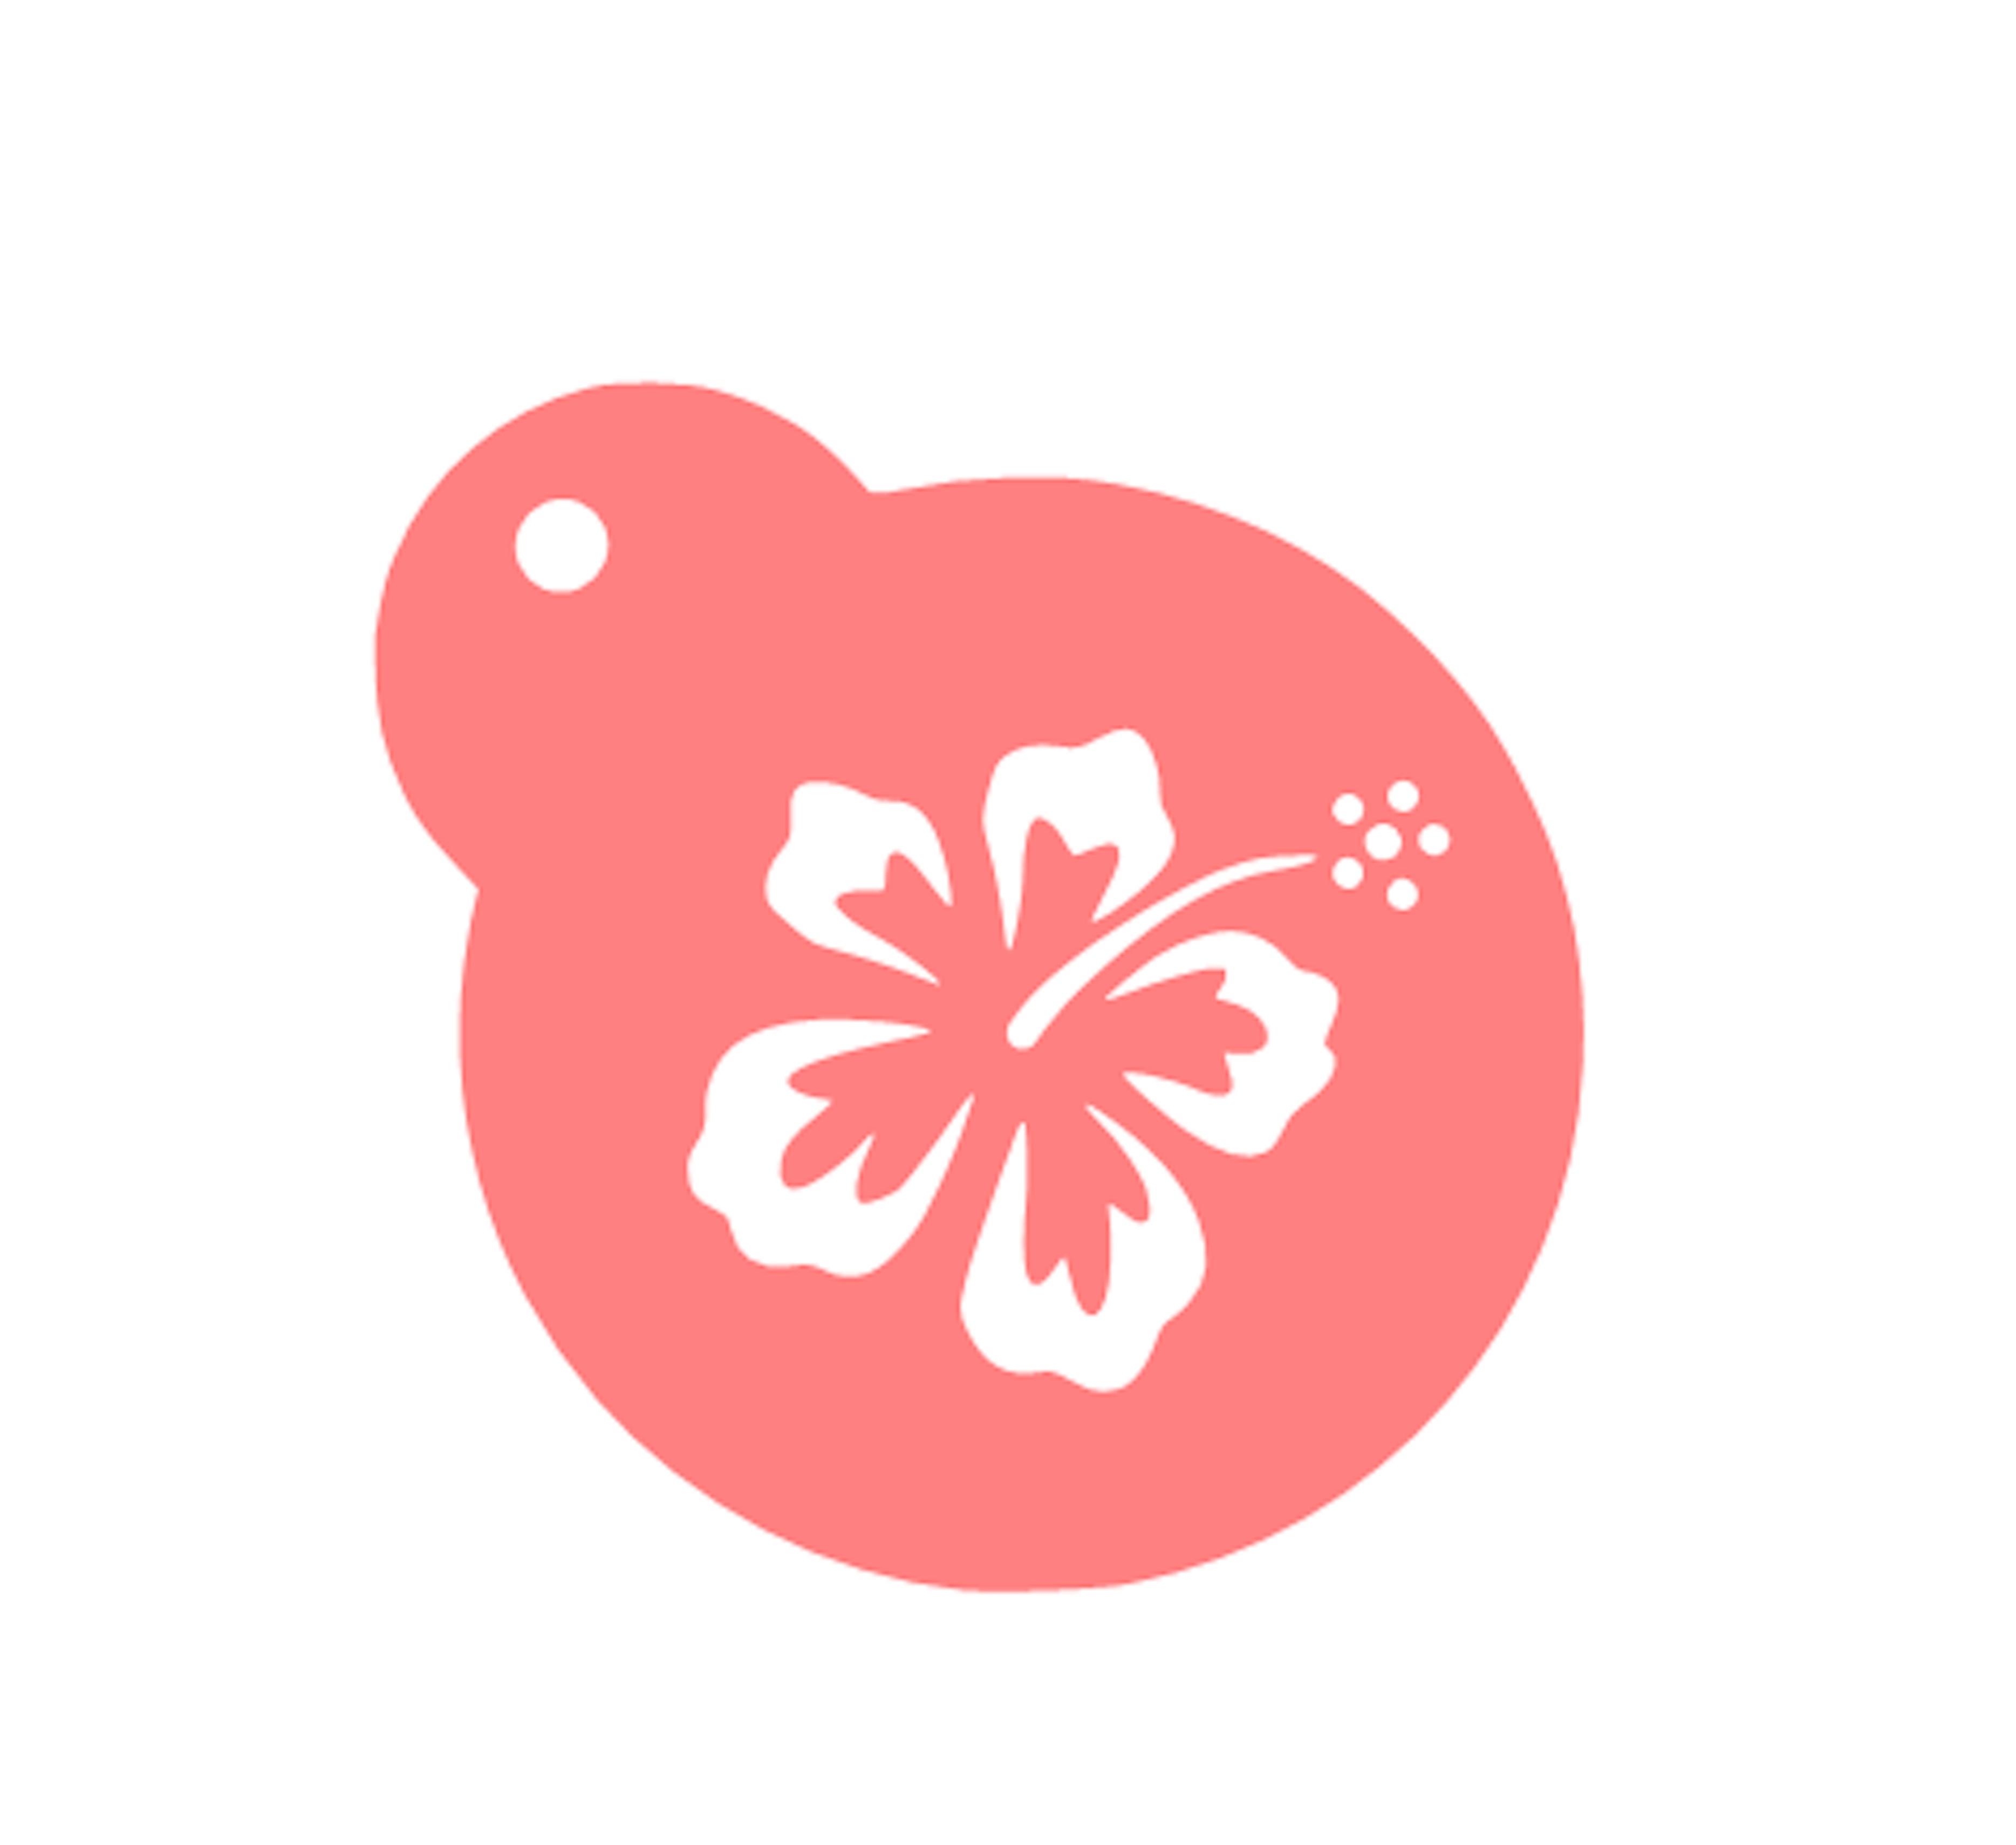 Hawaiian flower stencil bakeart stencils pinterest hawaiian our hawaiian cookie stencil is perfect for all of your luau tropical and moana themed treats designed for 3 space and available in two template sizes izmirmasajfo